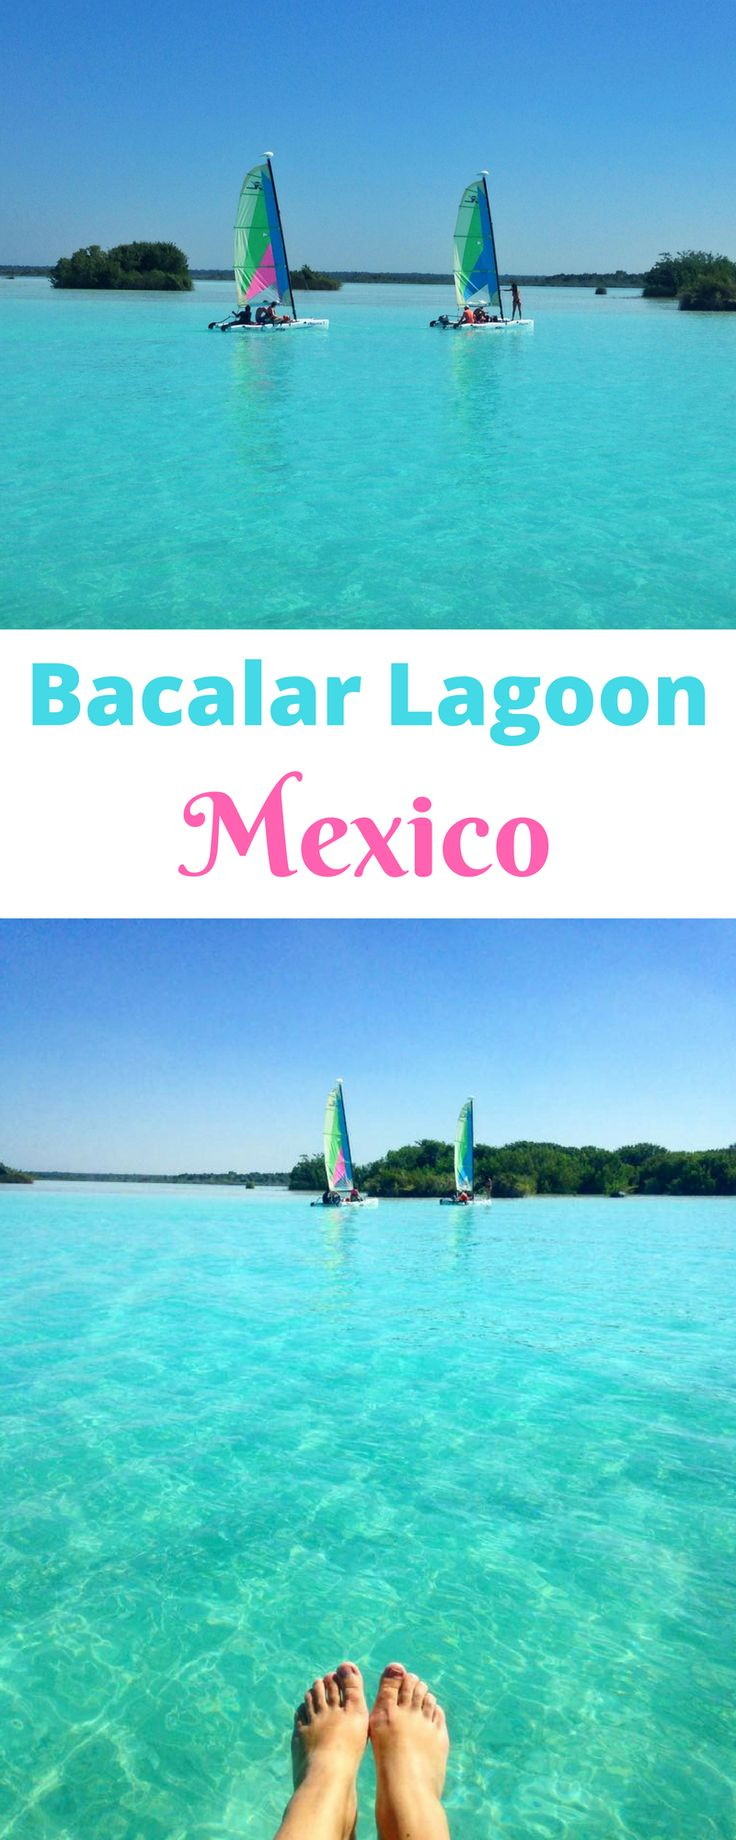 Bacalar Lagoon, Mexico - most beautiful lake in the world.